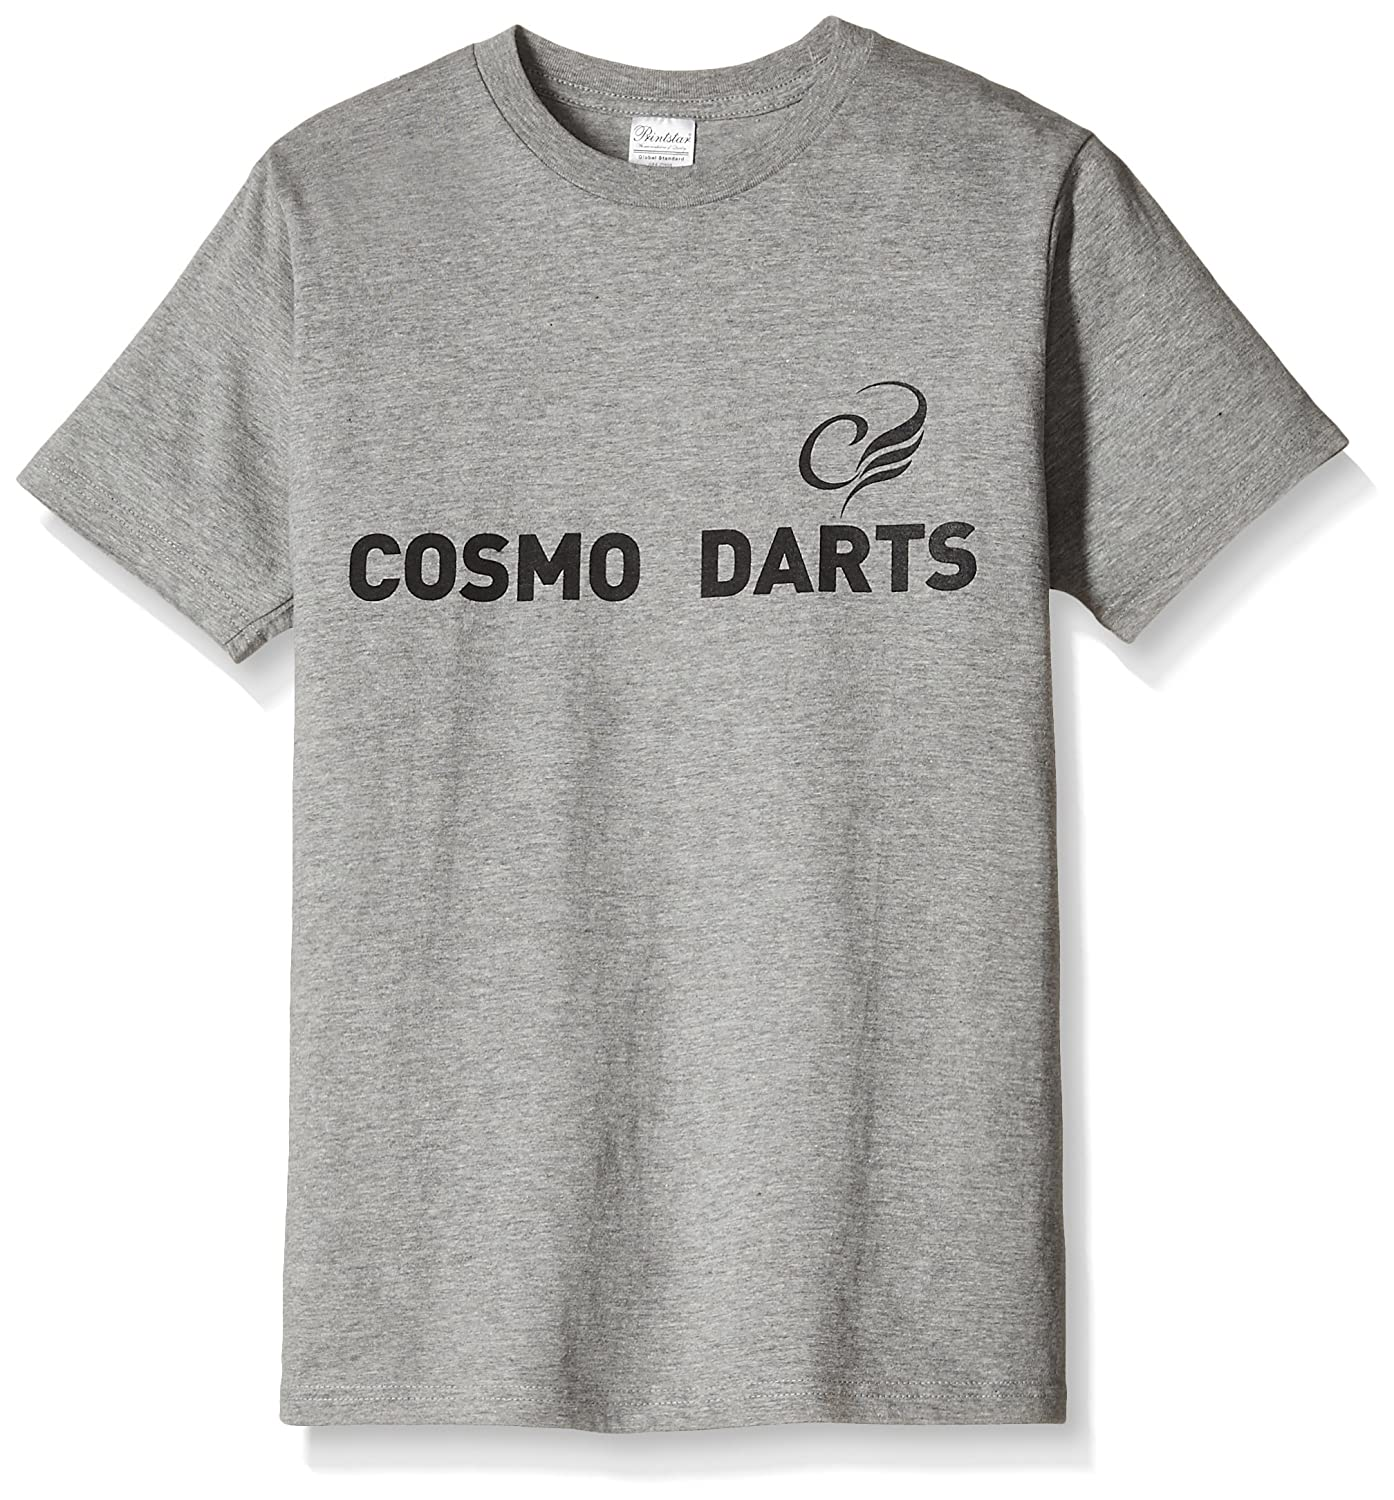 COSMO DARTS accessories logo T shirt grey XL